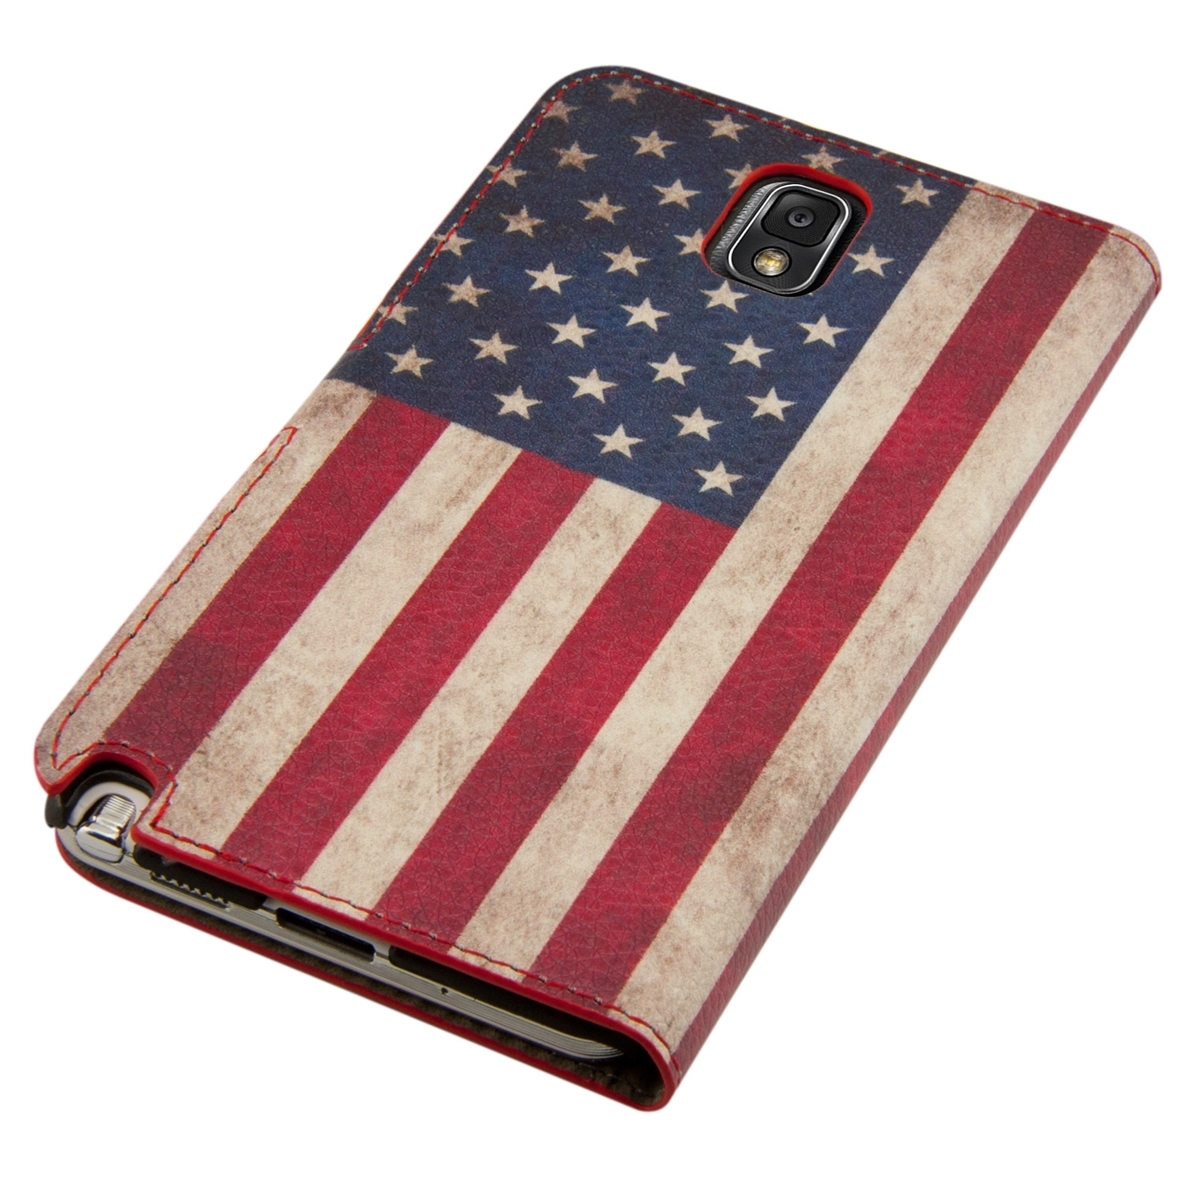 kwmobile-BORSA-DI-ECOPELLE-PER-SAMSUNG-GALAXY-NOTE-3-CUSTODIA-COVER-ASTUCCIO